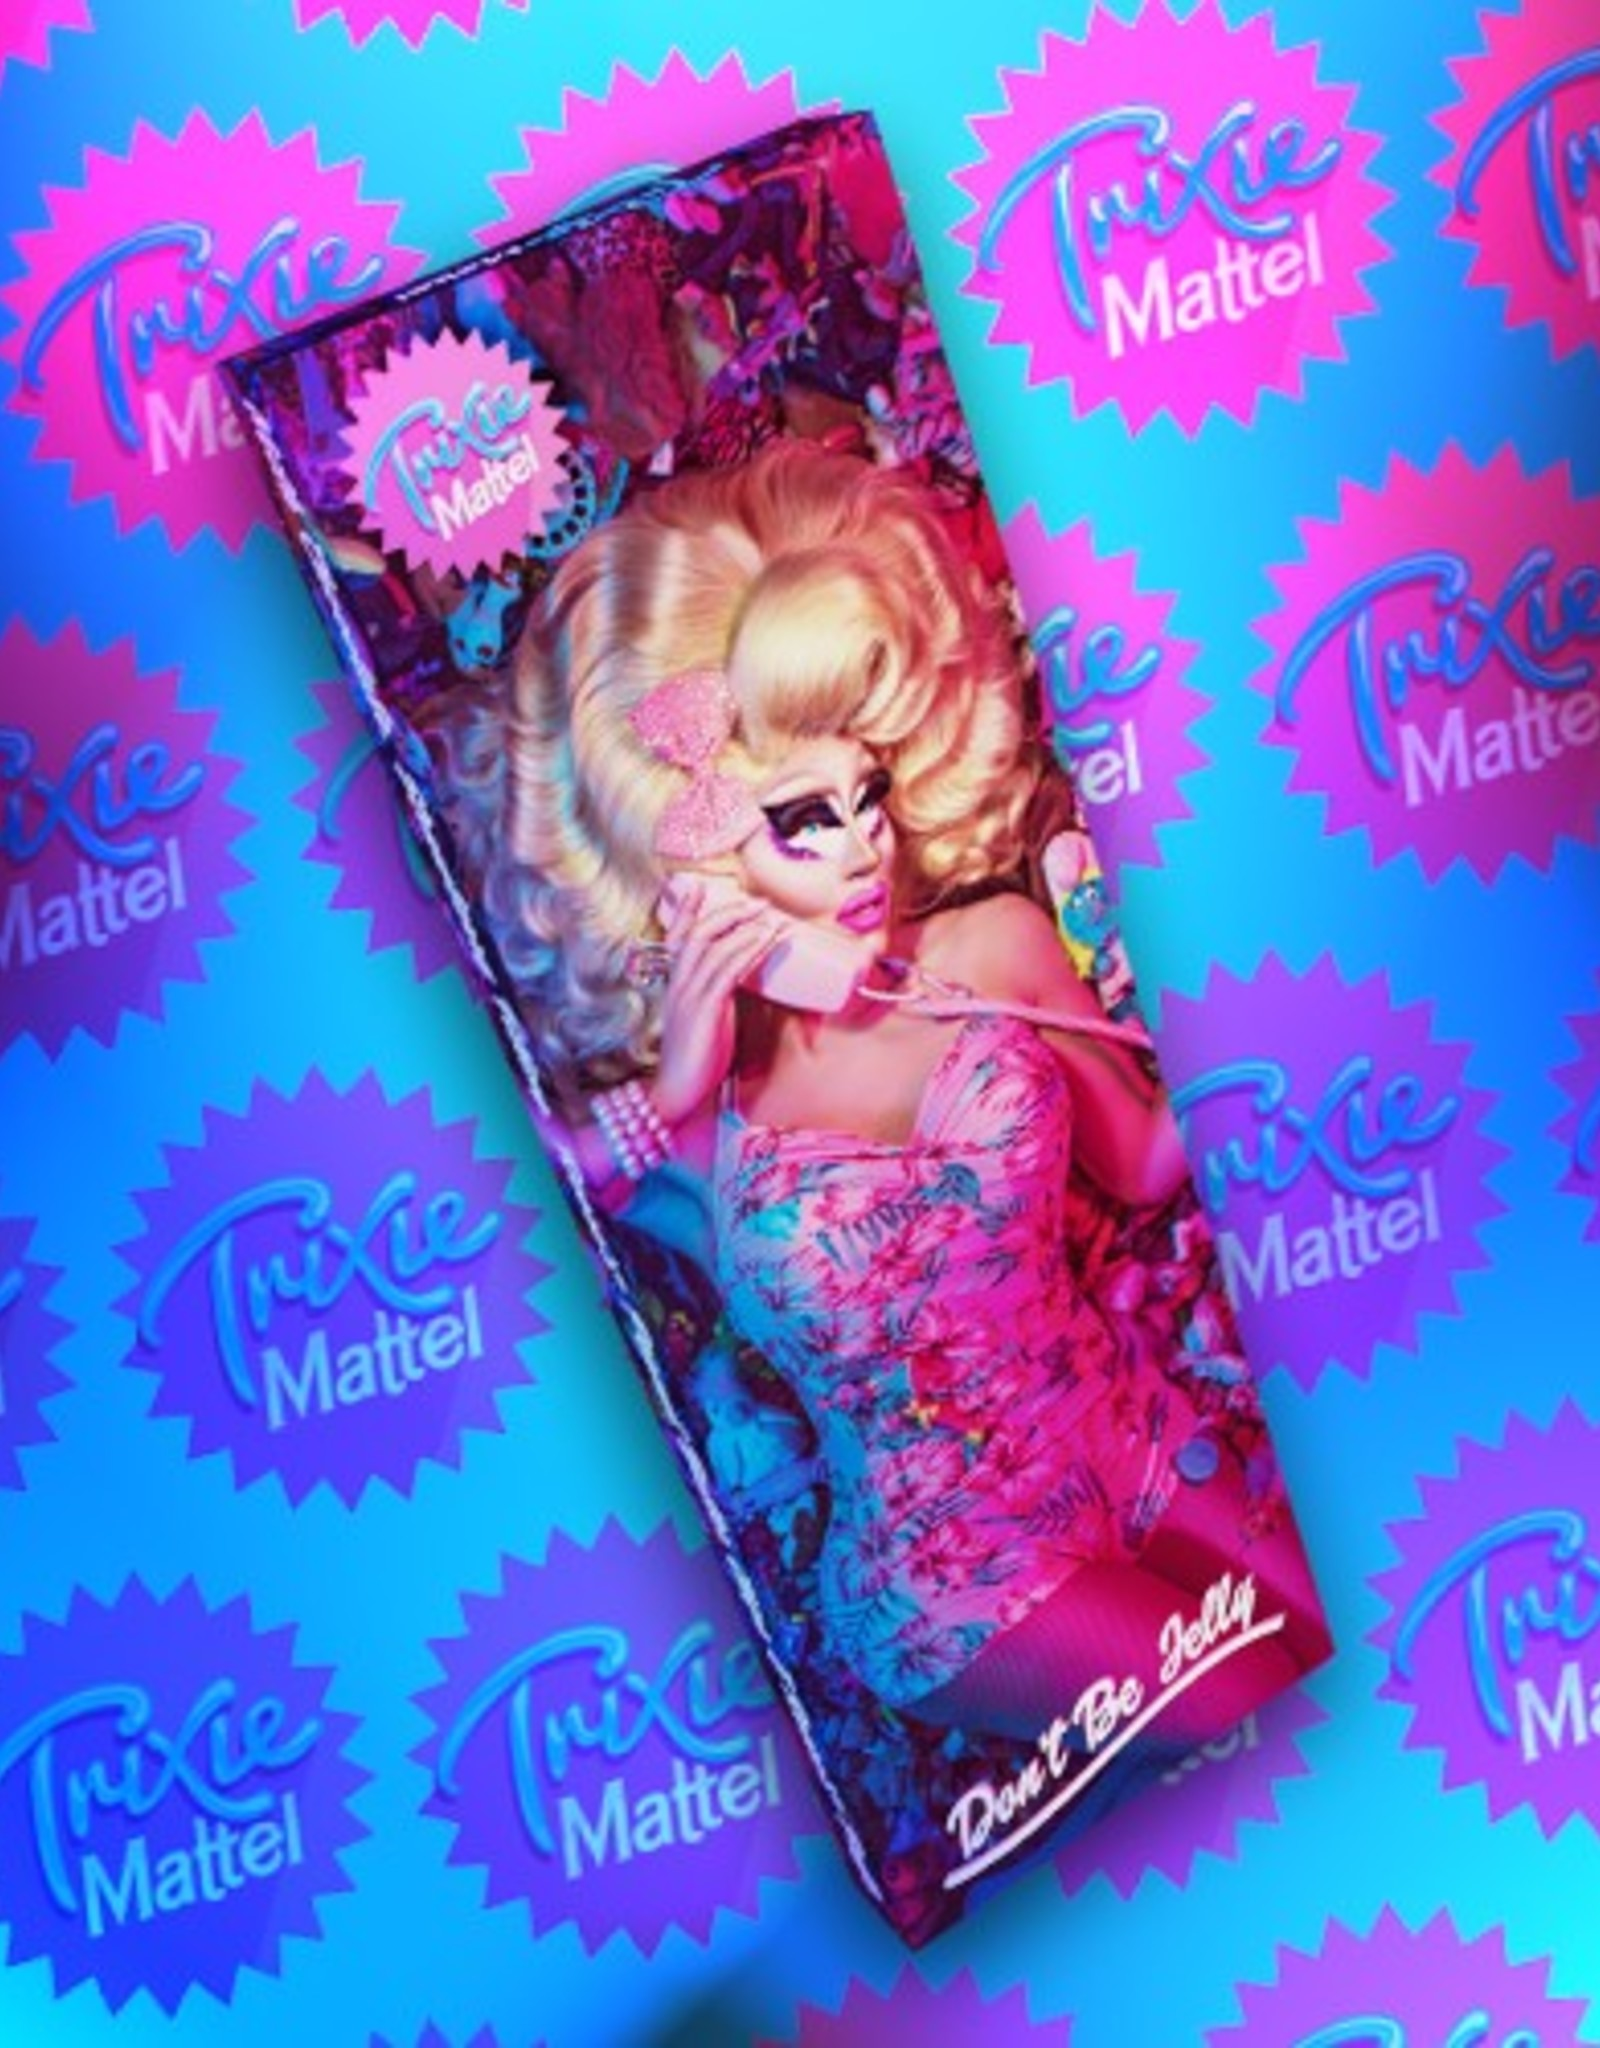 Trixie Mattel Don't Be Jelly Chocolate Bar